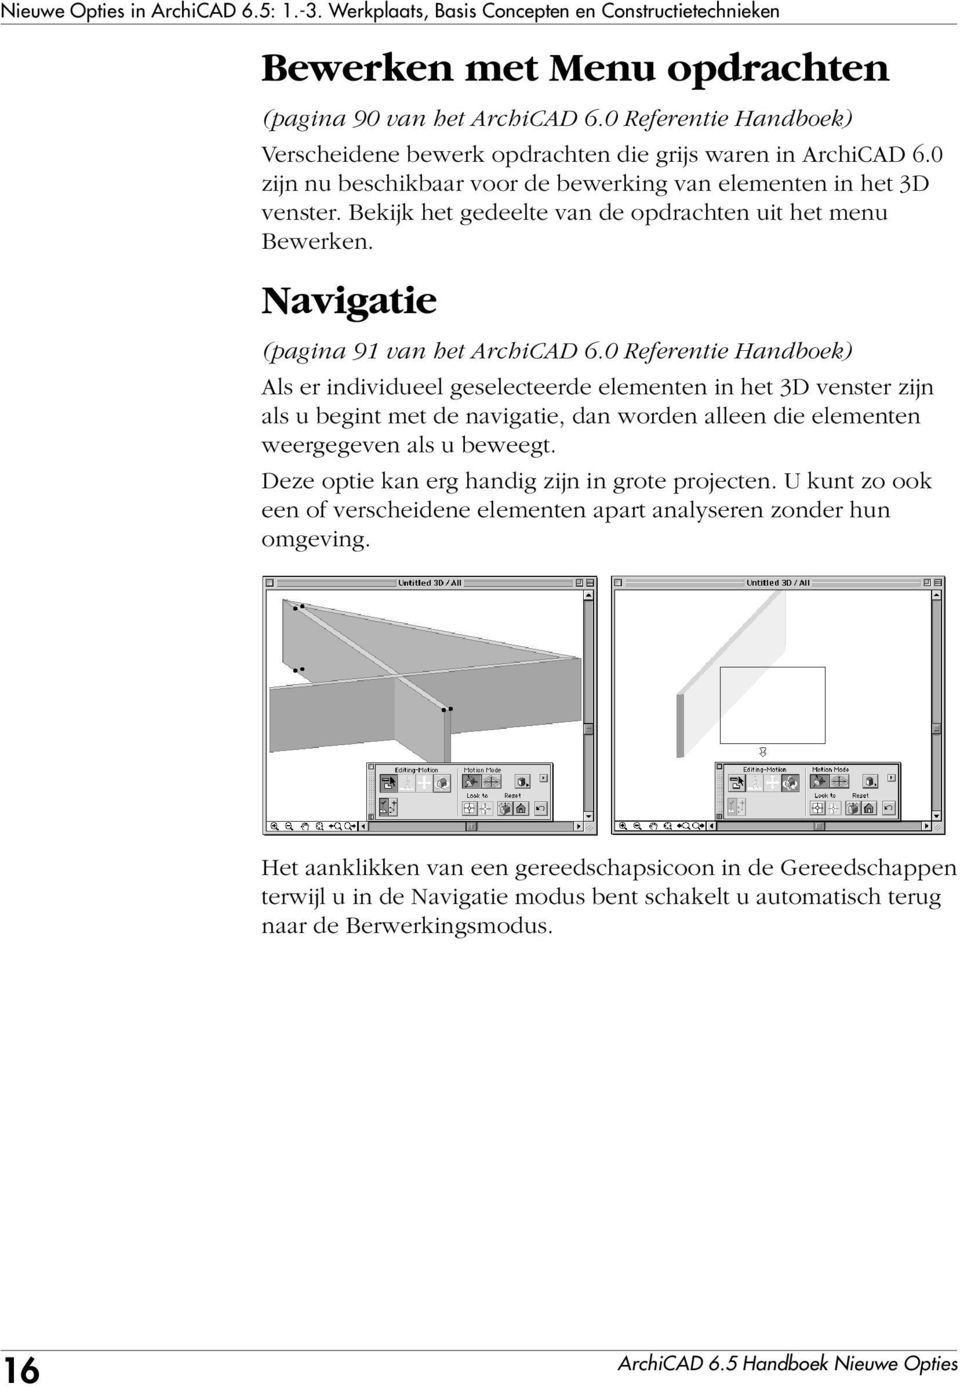 archicad 6 5 handboek nieuwe opties graphisoft pdf. Black Bedroom Furniture Sets. Home Design Ideas